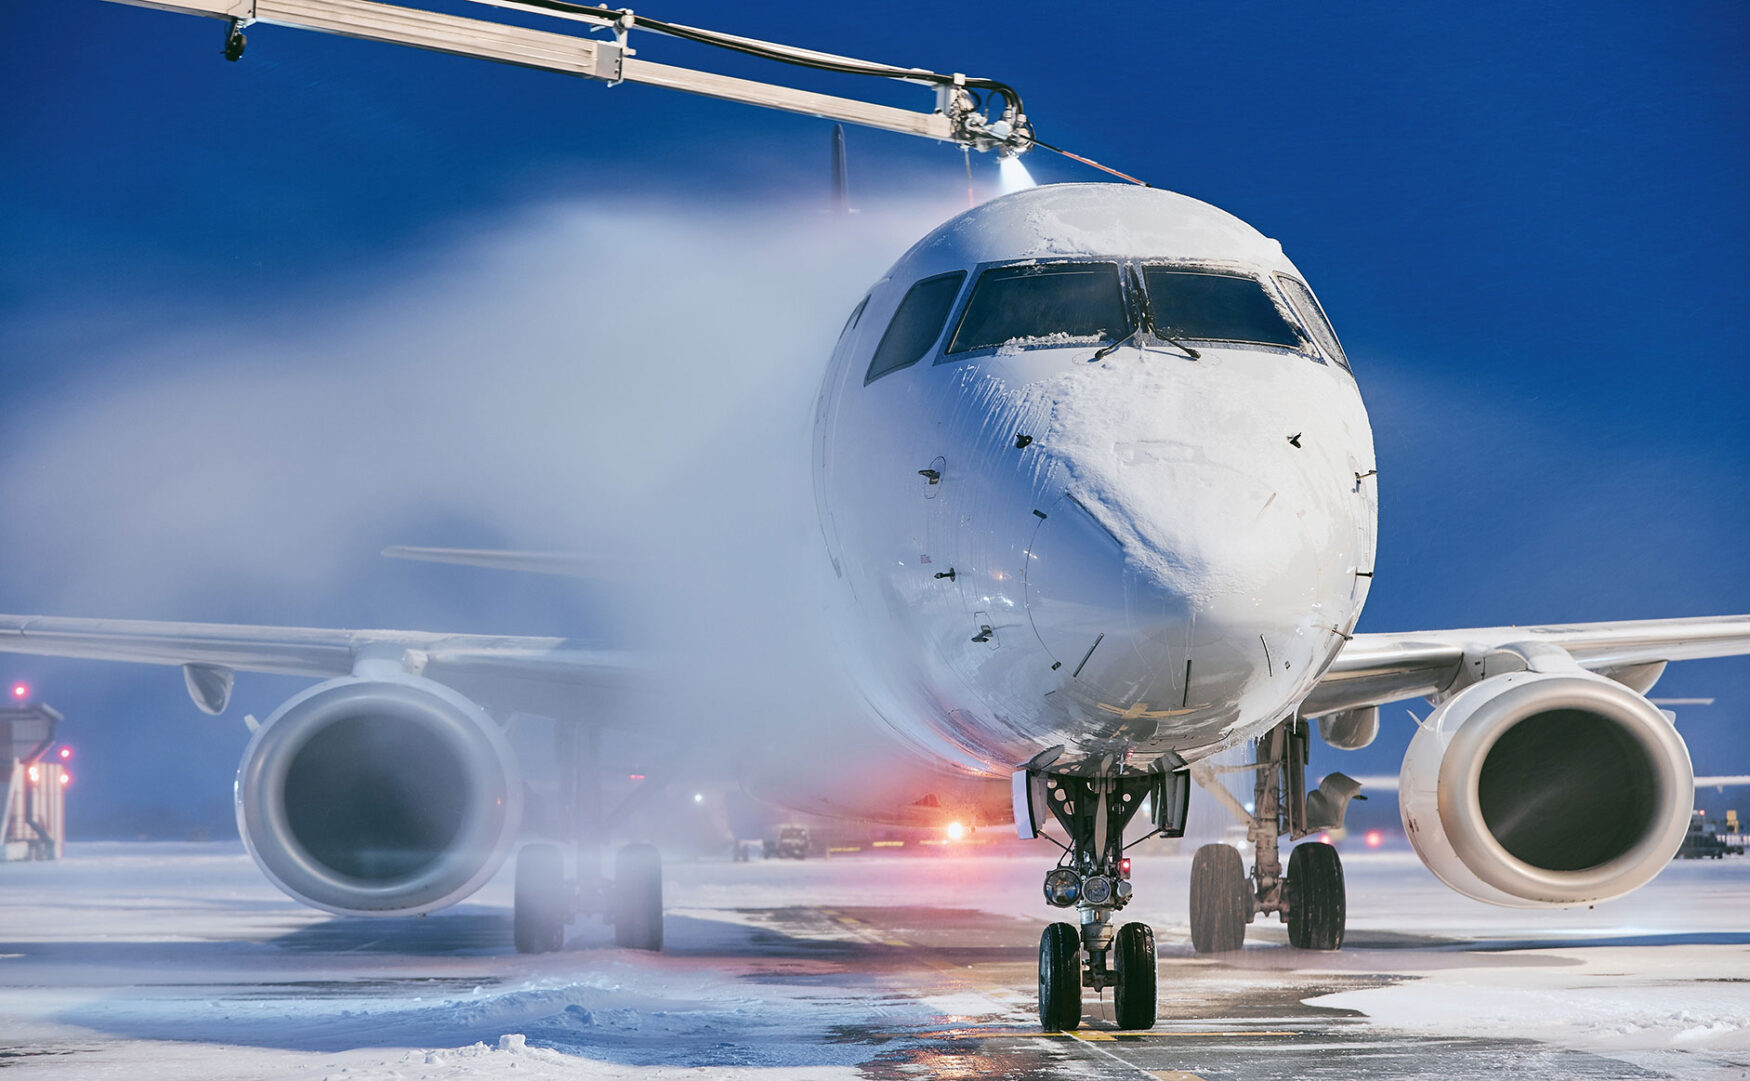 de-icing a plane on the tarmac